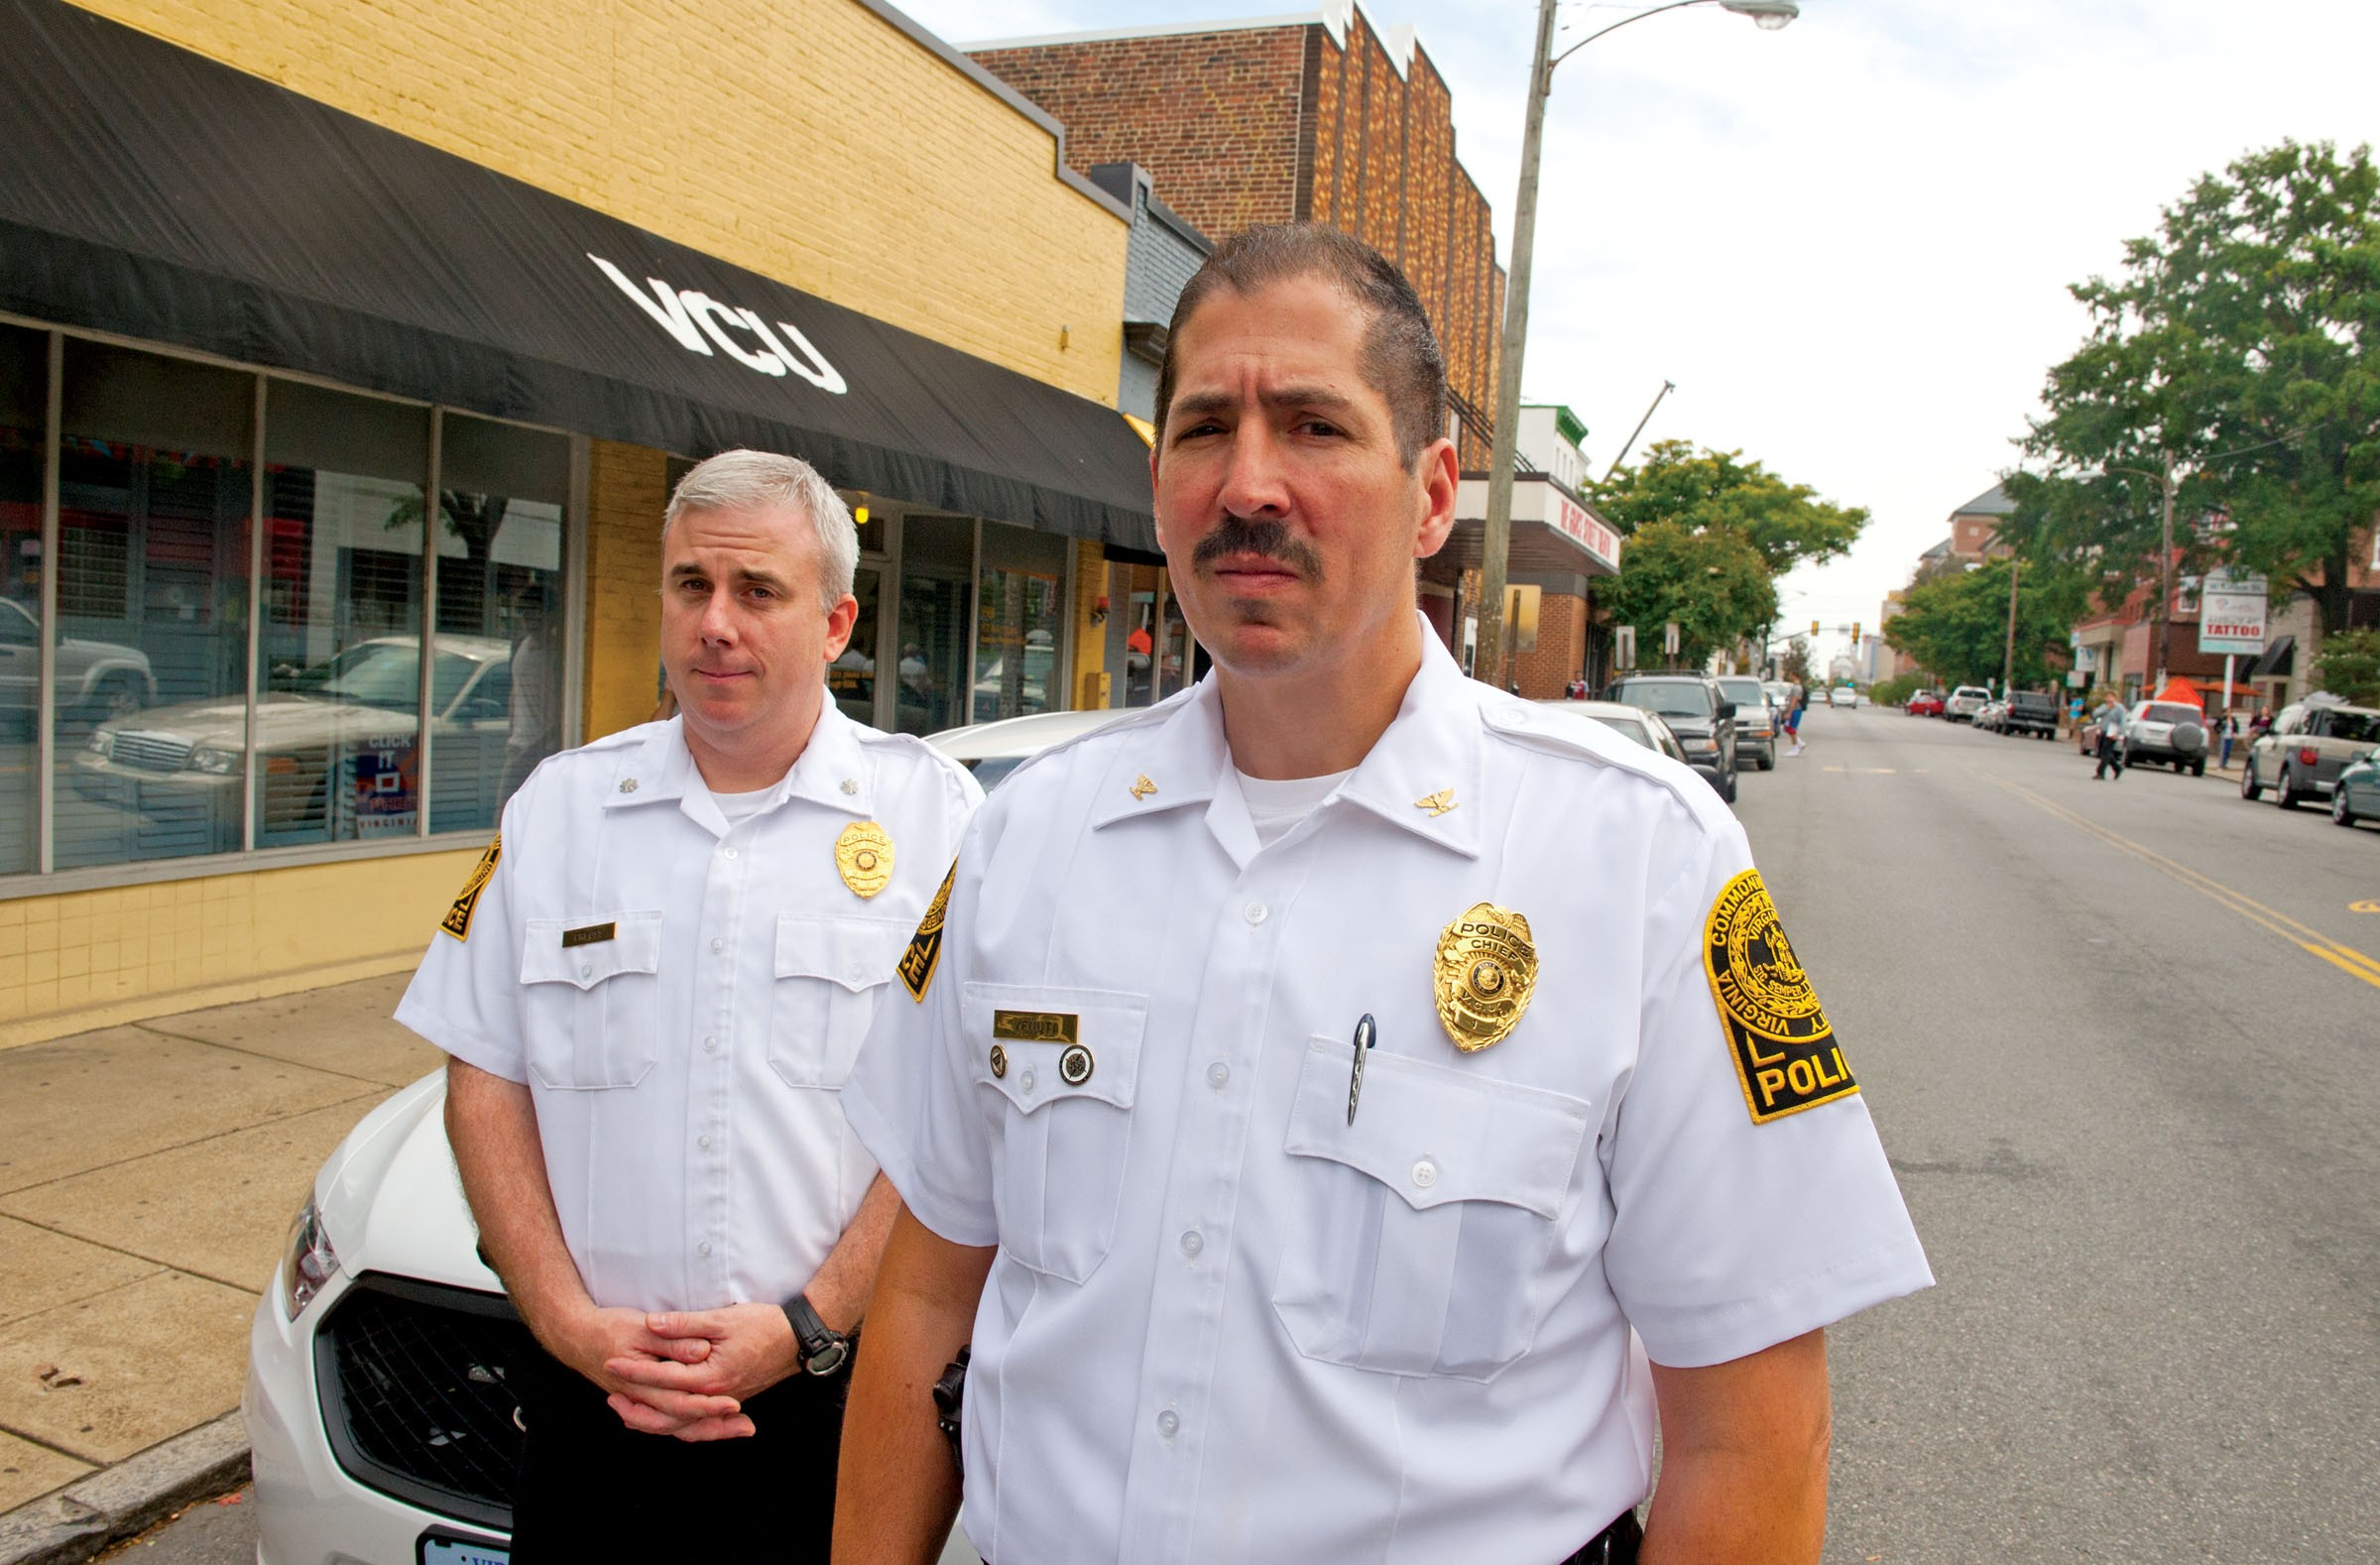 VCU Police Chief John Venuti and Assistant Chief Chris Preuss, left, say violent crime on campus is actually decreasing, despite an increase in news reports over the last few weeks. - SCOTT ELMQUIST